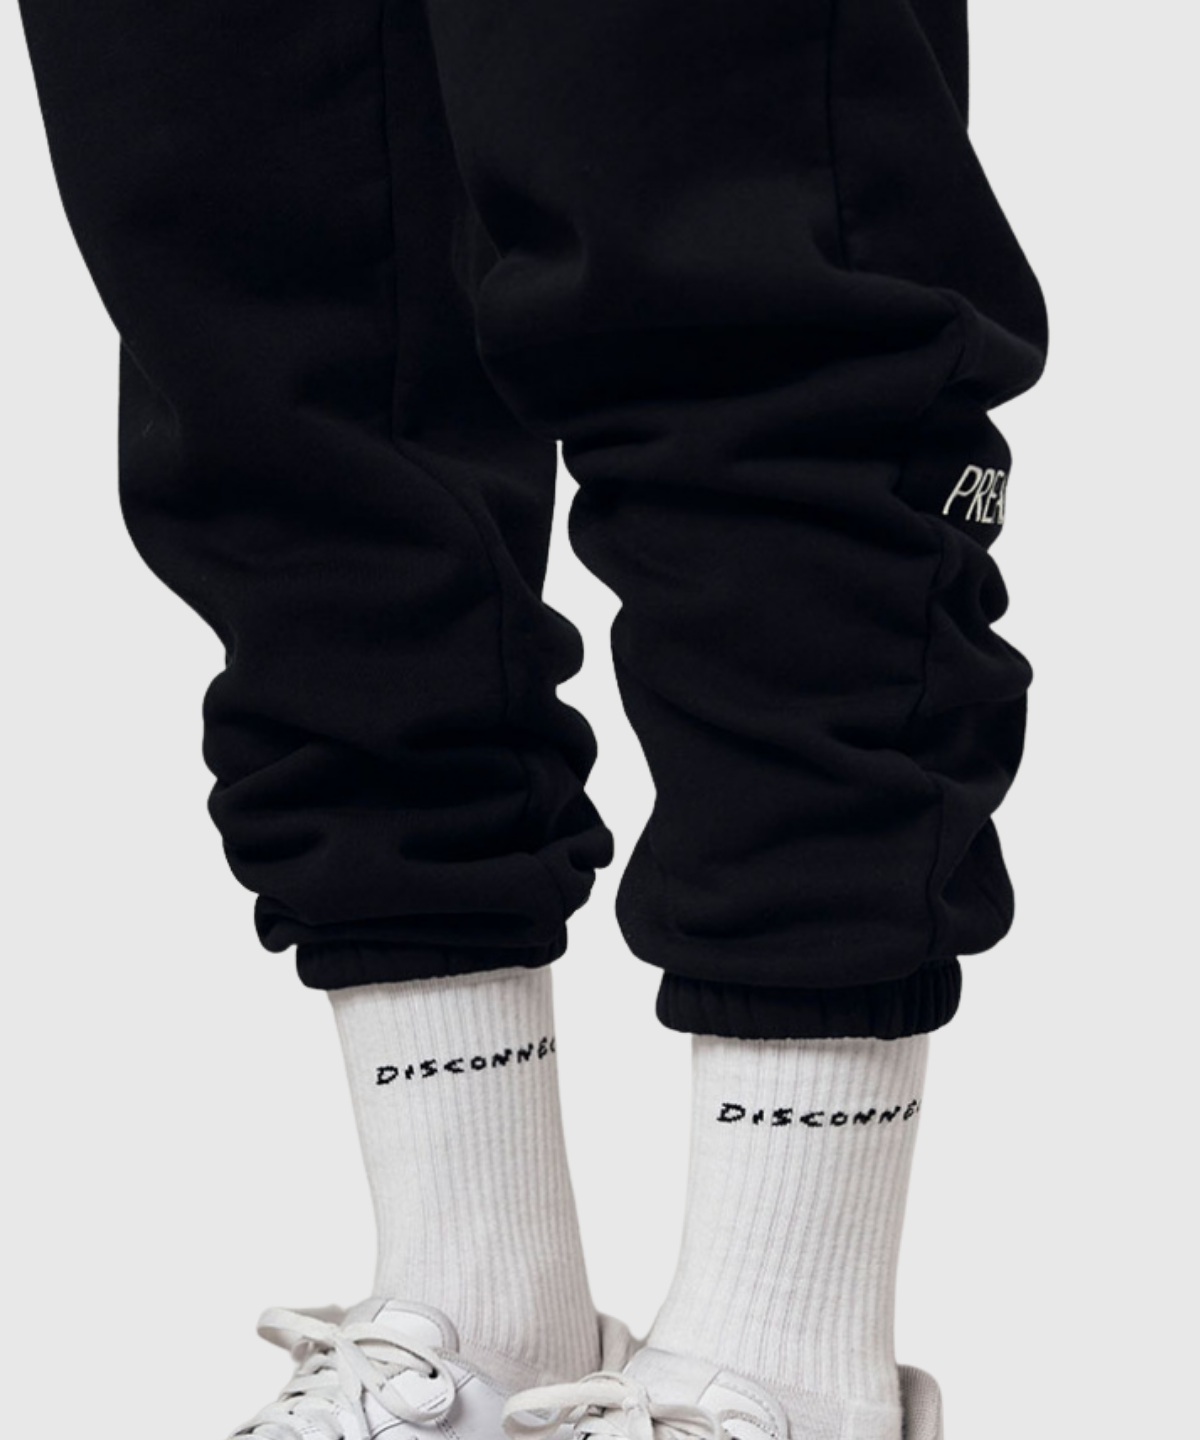 Disconnect 2 Connect Socks